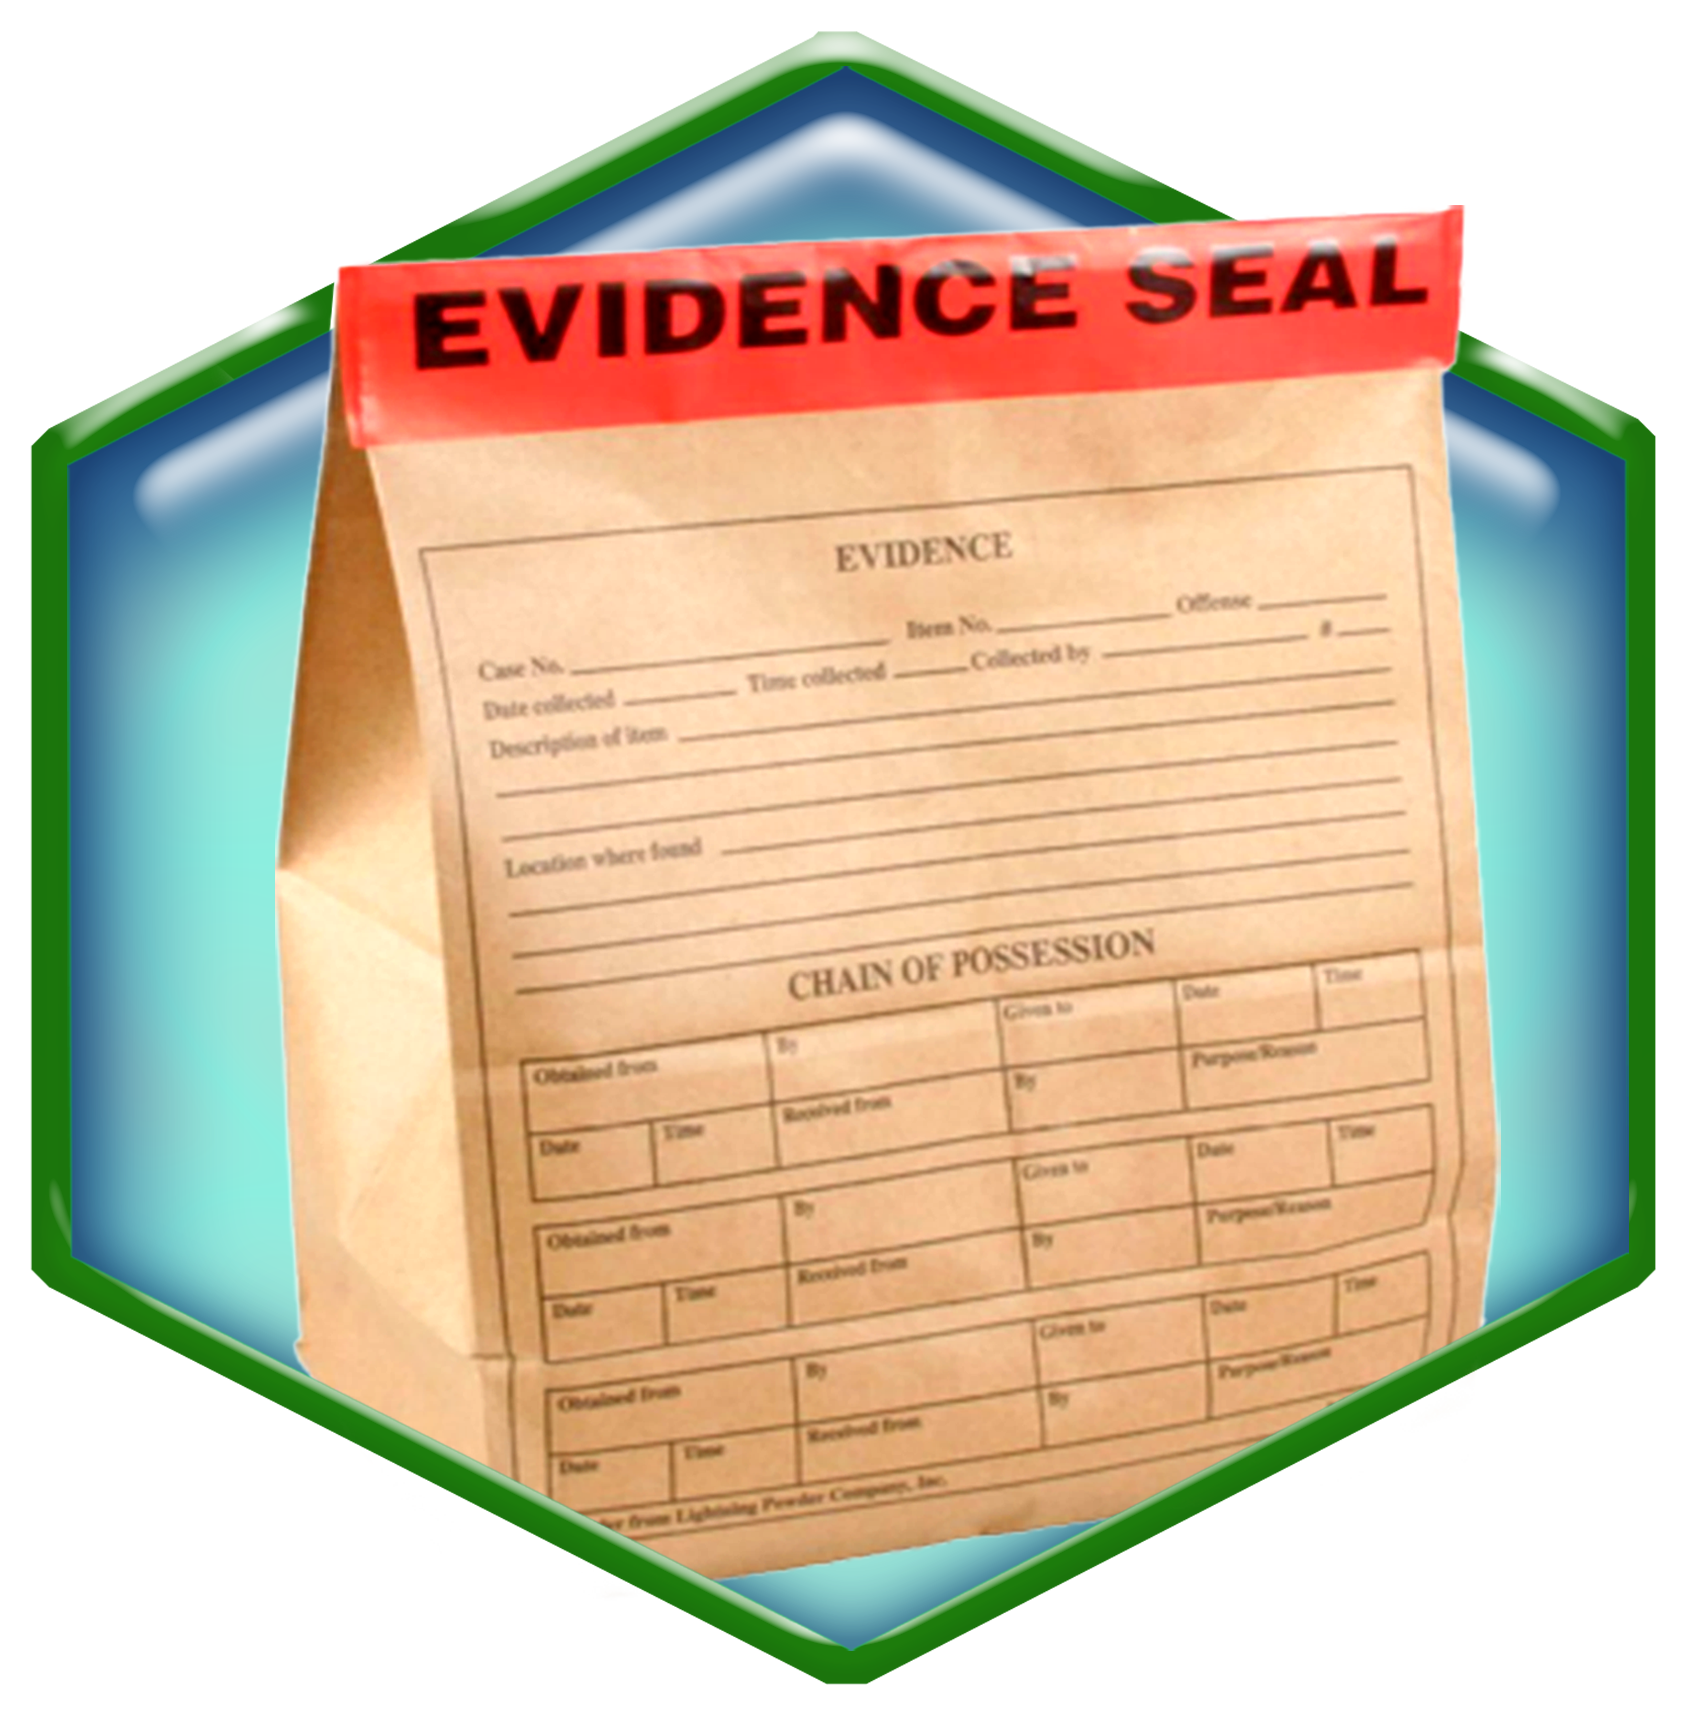 Crime Lab Services - EVIDENCE